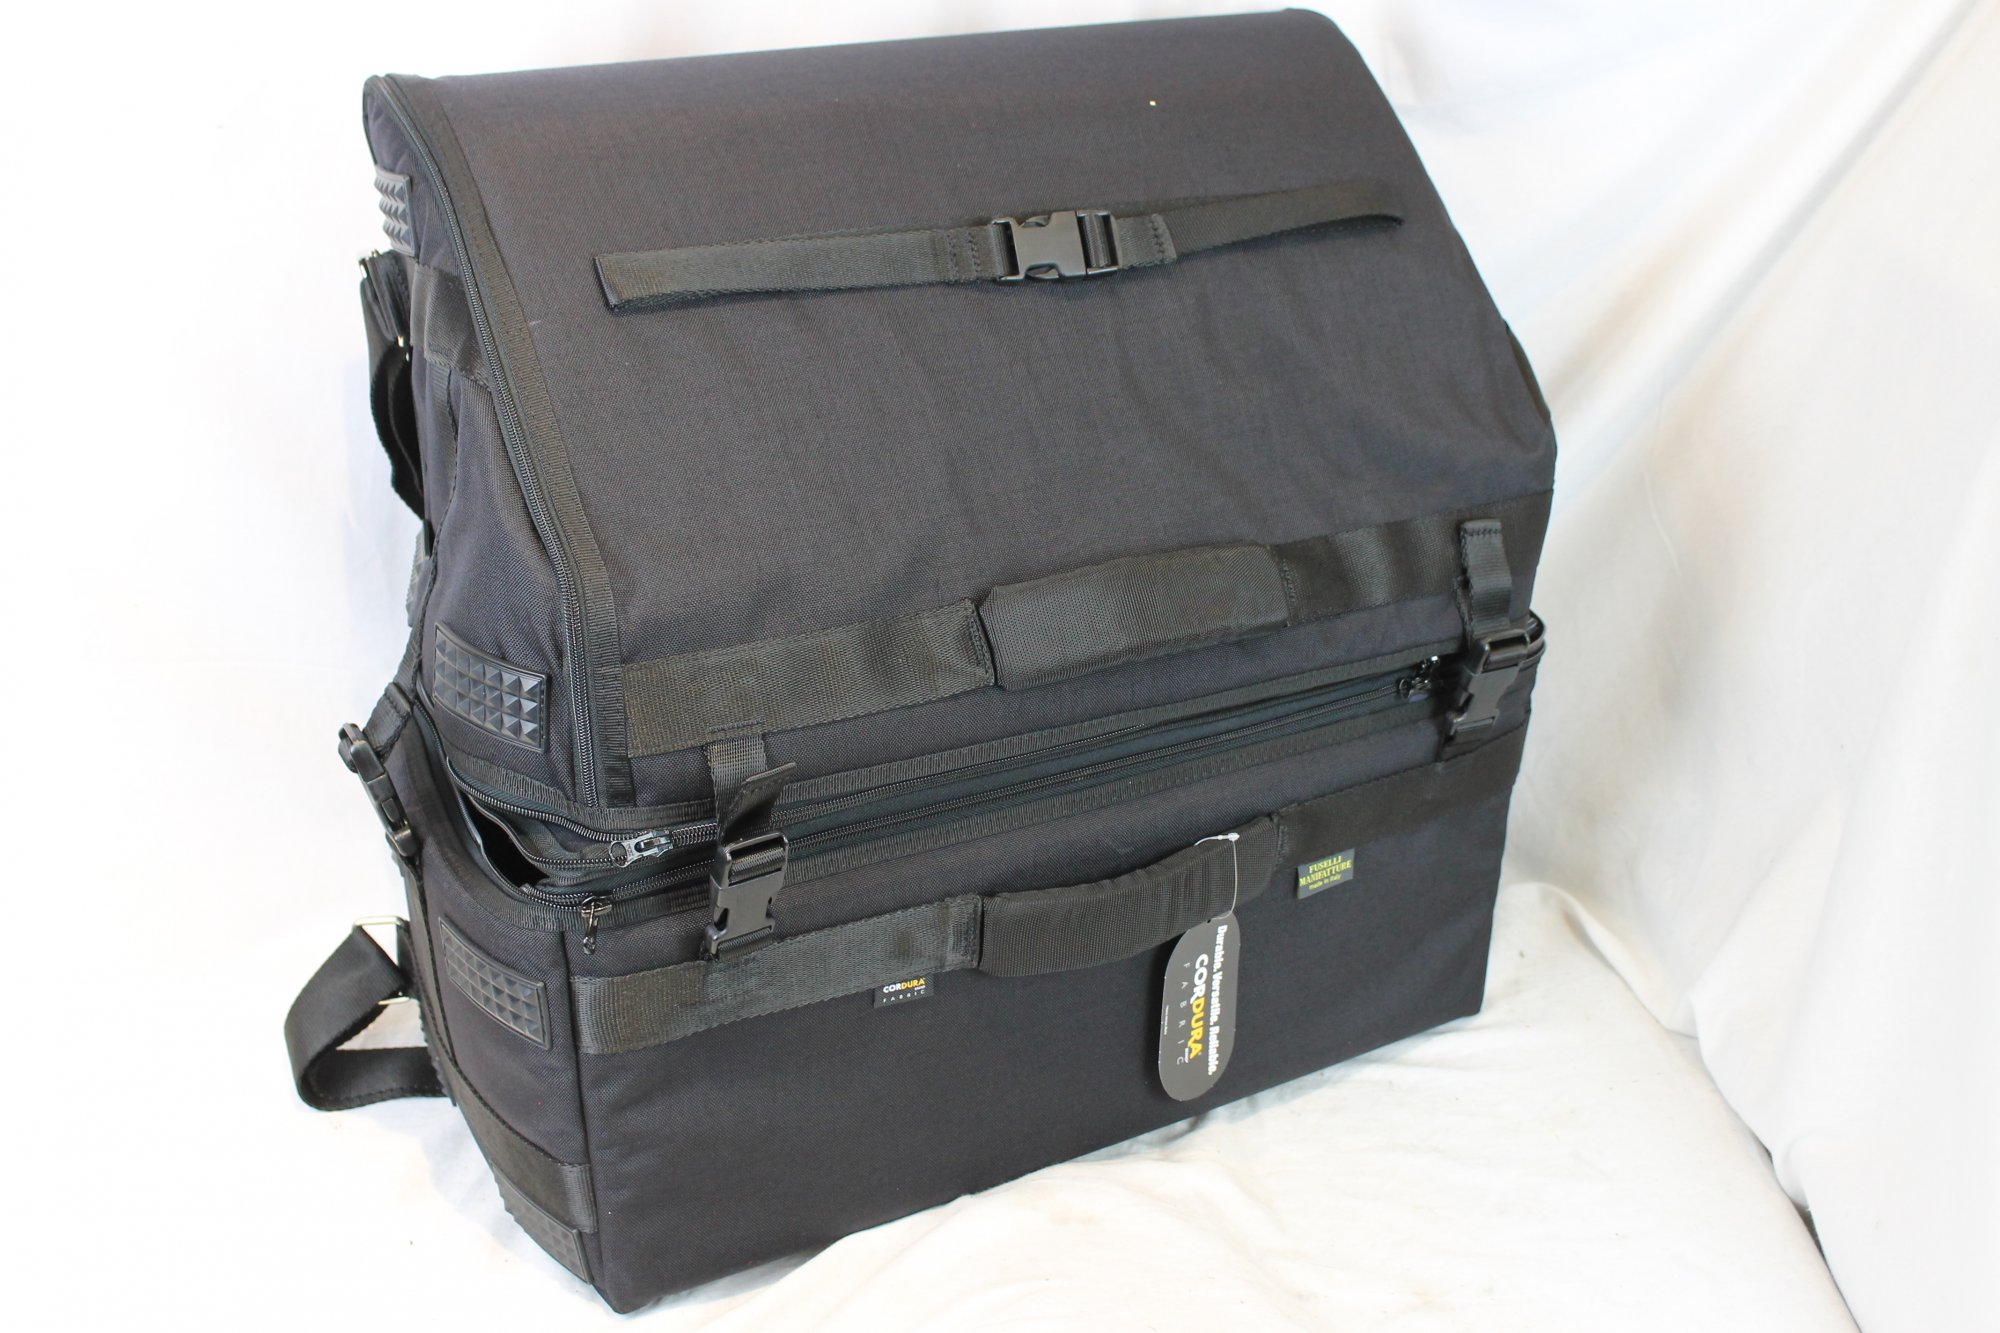 NEW Black Fuselli Jet Set Gig Bag for Accordion 22 x 21.5 x 10 fits Standard and Extended Key Piano Accordions